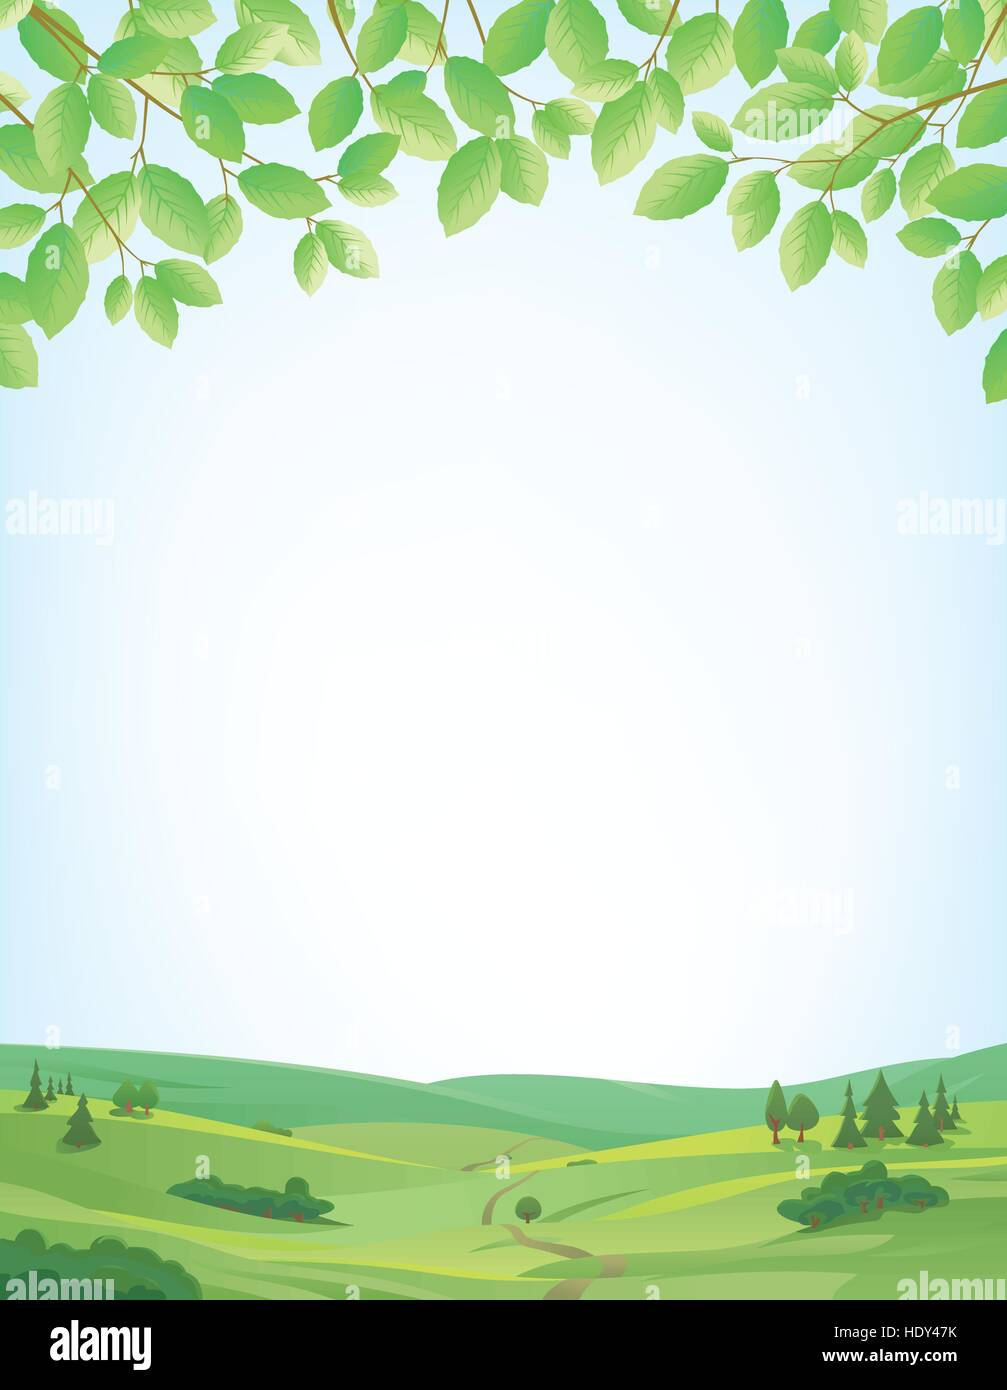 Background for springtime, border of leaves at top, idyllic landscape at bottom, large copy space - Stock Vector